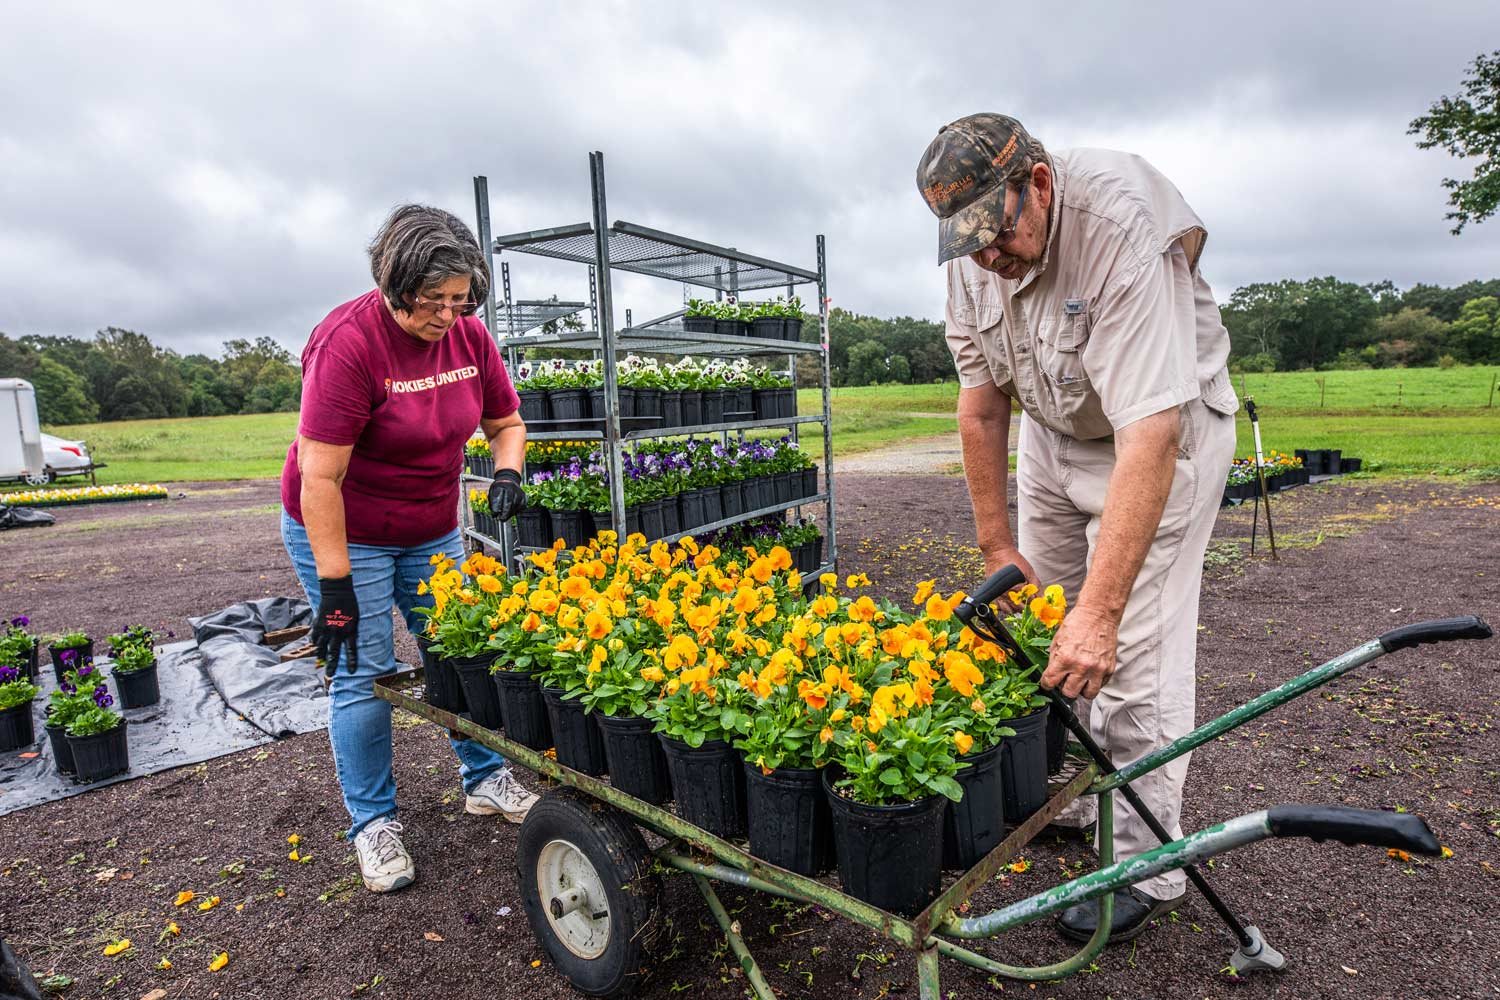 A woman and man lean over a cart filled with planters of orange flowers.